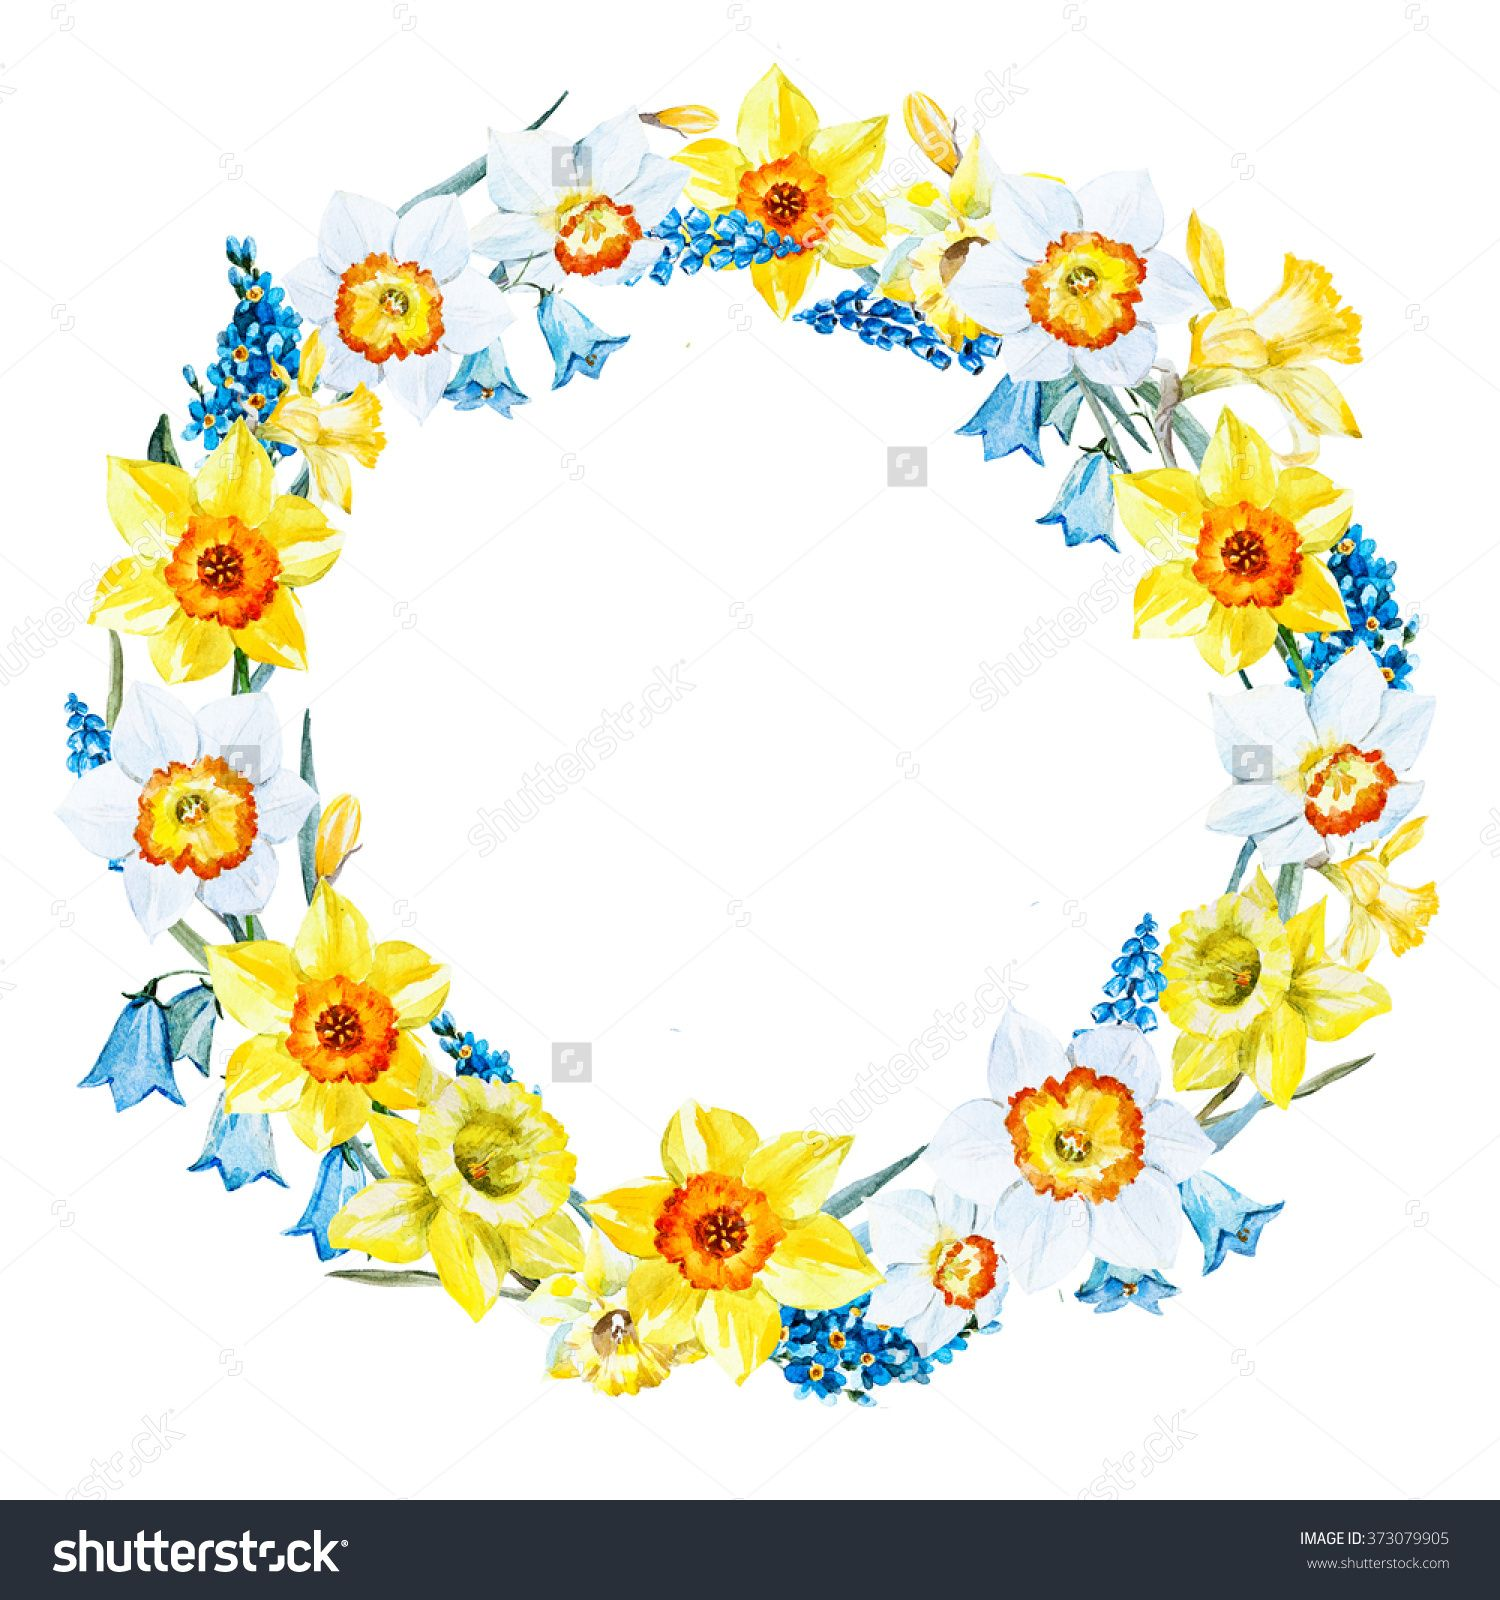 Httpsshutterstockpic 373079905stock photo watercolor watercolor spring flower wreath garland white and yellow daffodil blue flower nezabuka muscari retro card izmirmasajfo Gallery